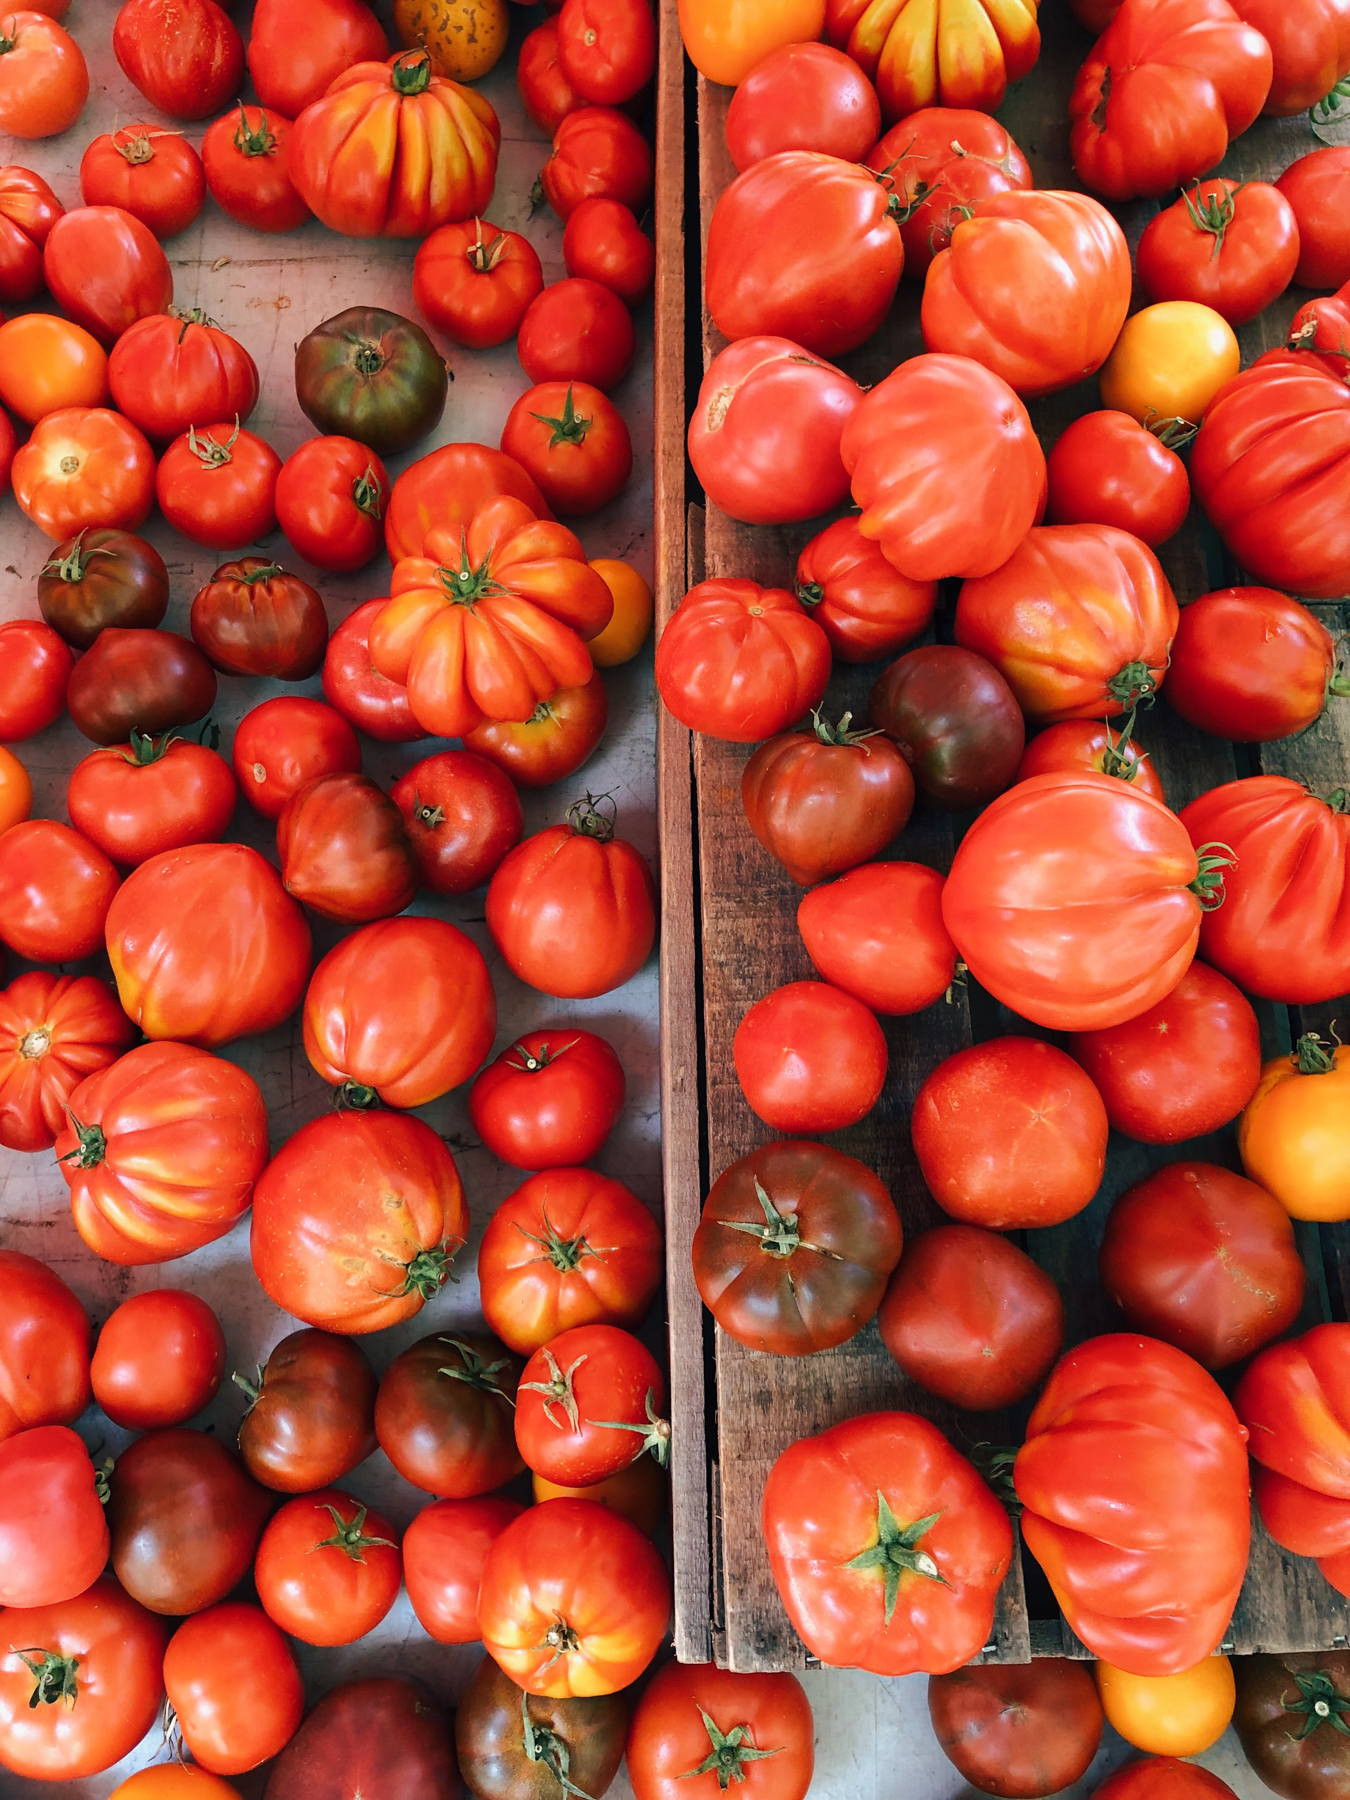 Organic tomatoes at the 79th St. Greenmarket